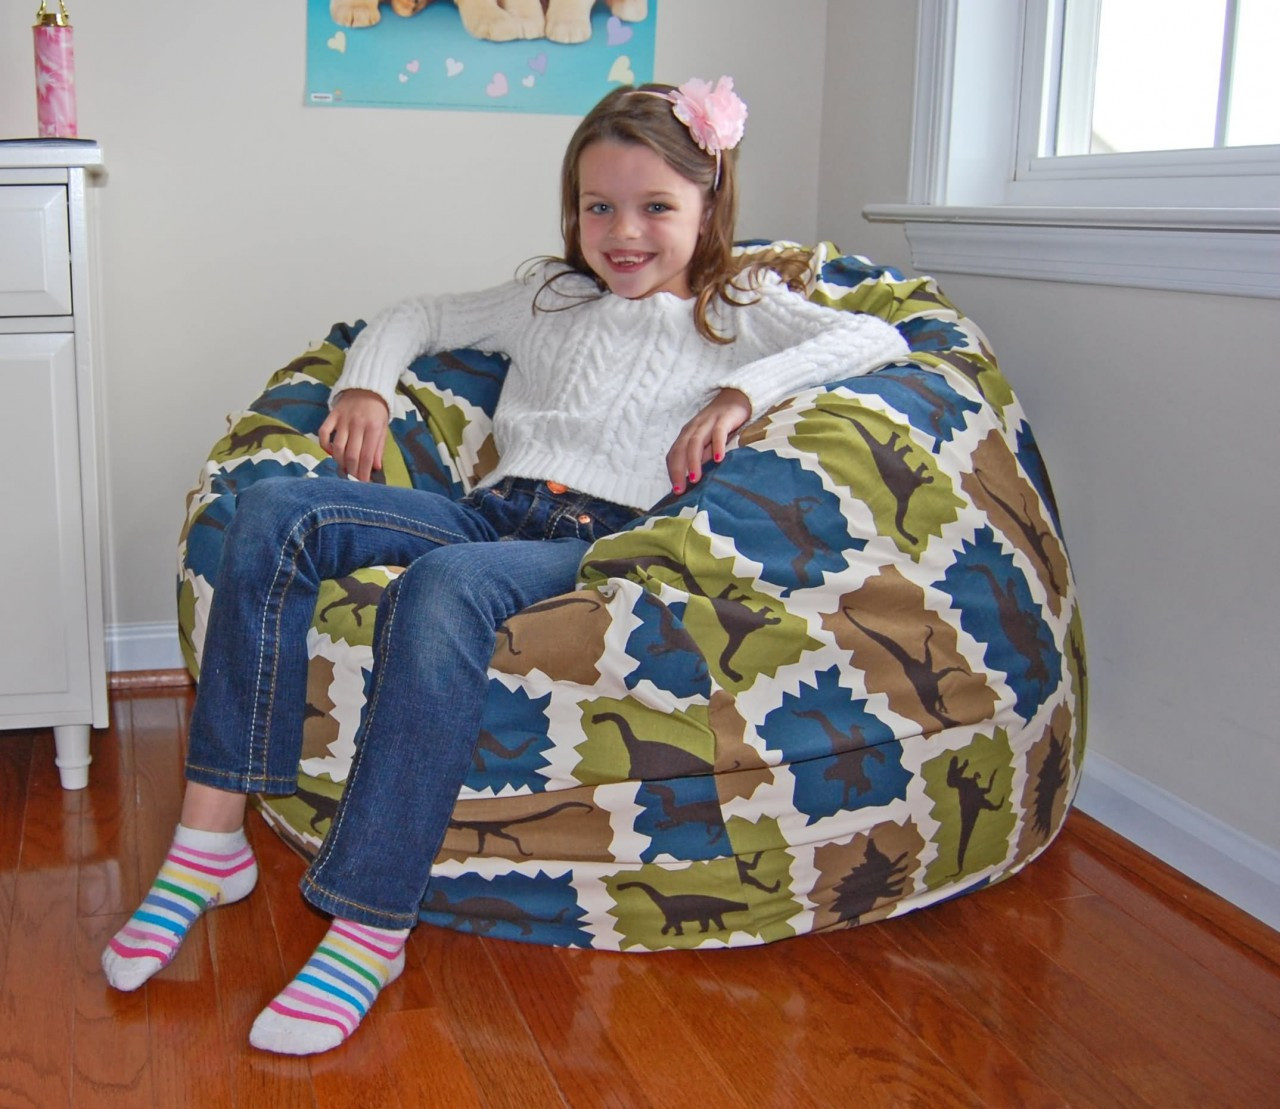 Buy Washable Dinosaurs Cotton Bean Bag Chairs For Kids